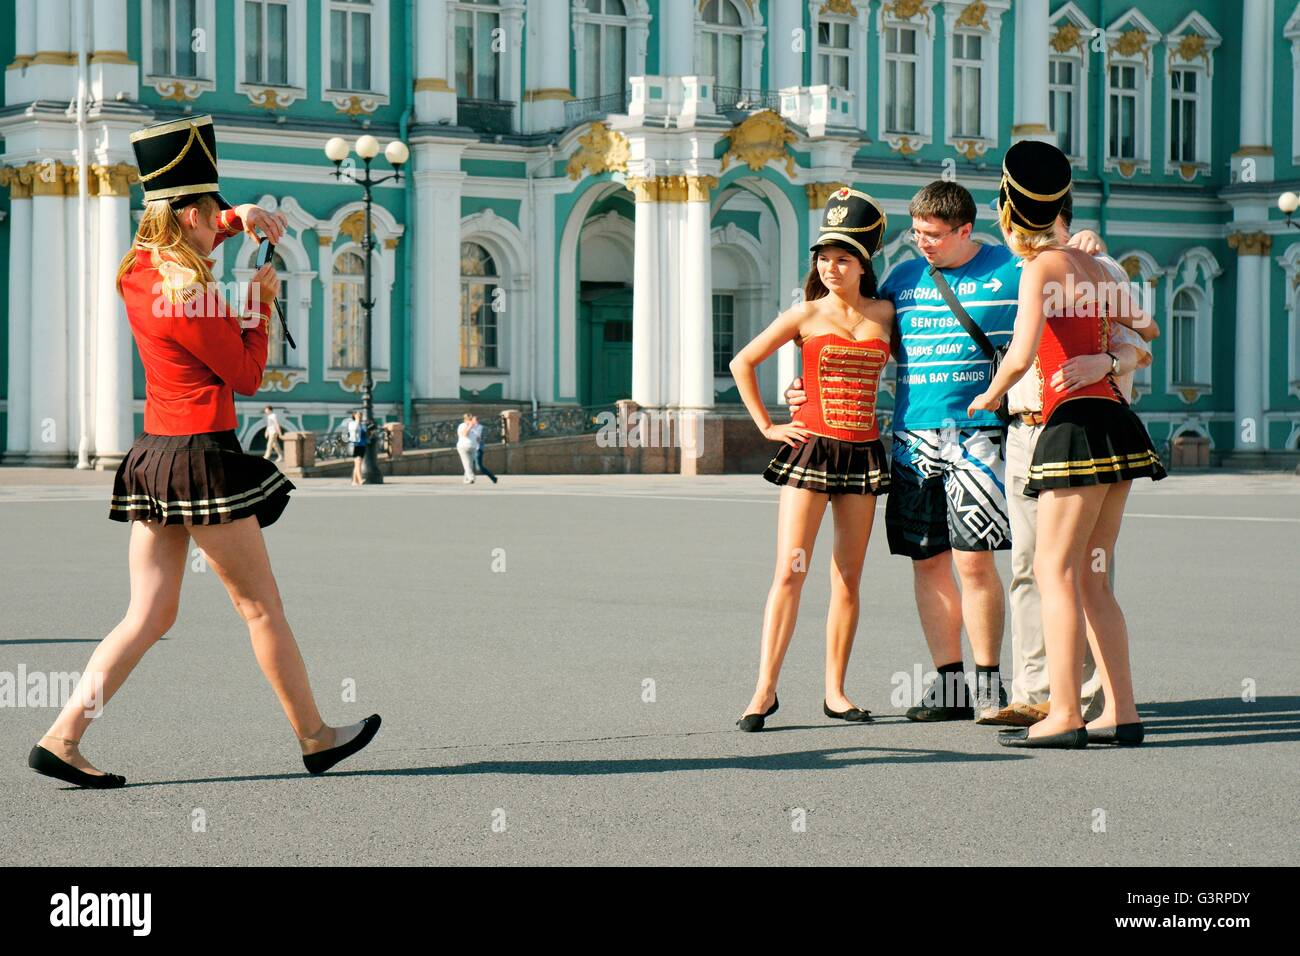 Saint Petersburg Russia. Enterprising young women pose as Palace Guards for tourist photographs in front of the - Stock Image